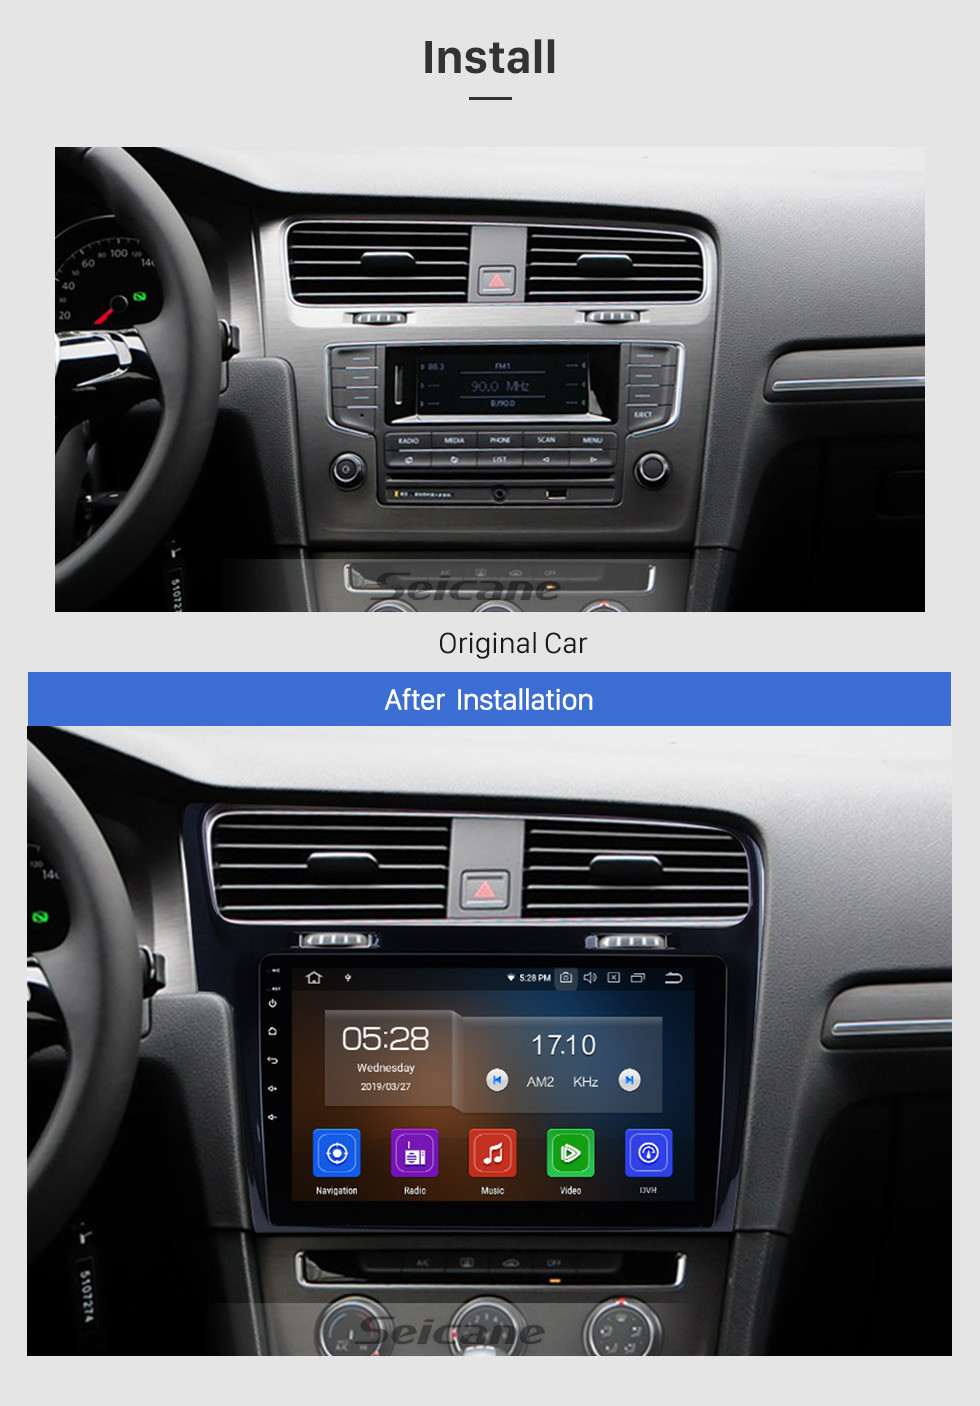 Seicane 10.1 inch For 2013 2014 2015 VW Volkswagen Golf 7 Android 10.0 Radio GPS Navigation Car stereo with 1024*600 Touchscreen Mirror Link OBD2 Steering Wheel Control Rearview Camera